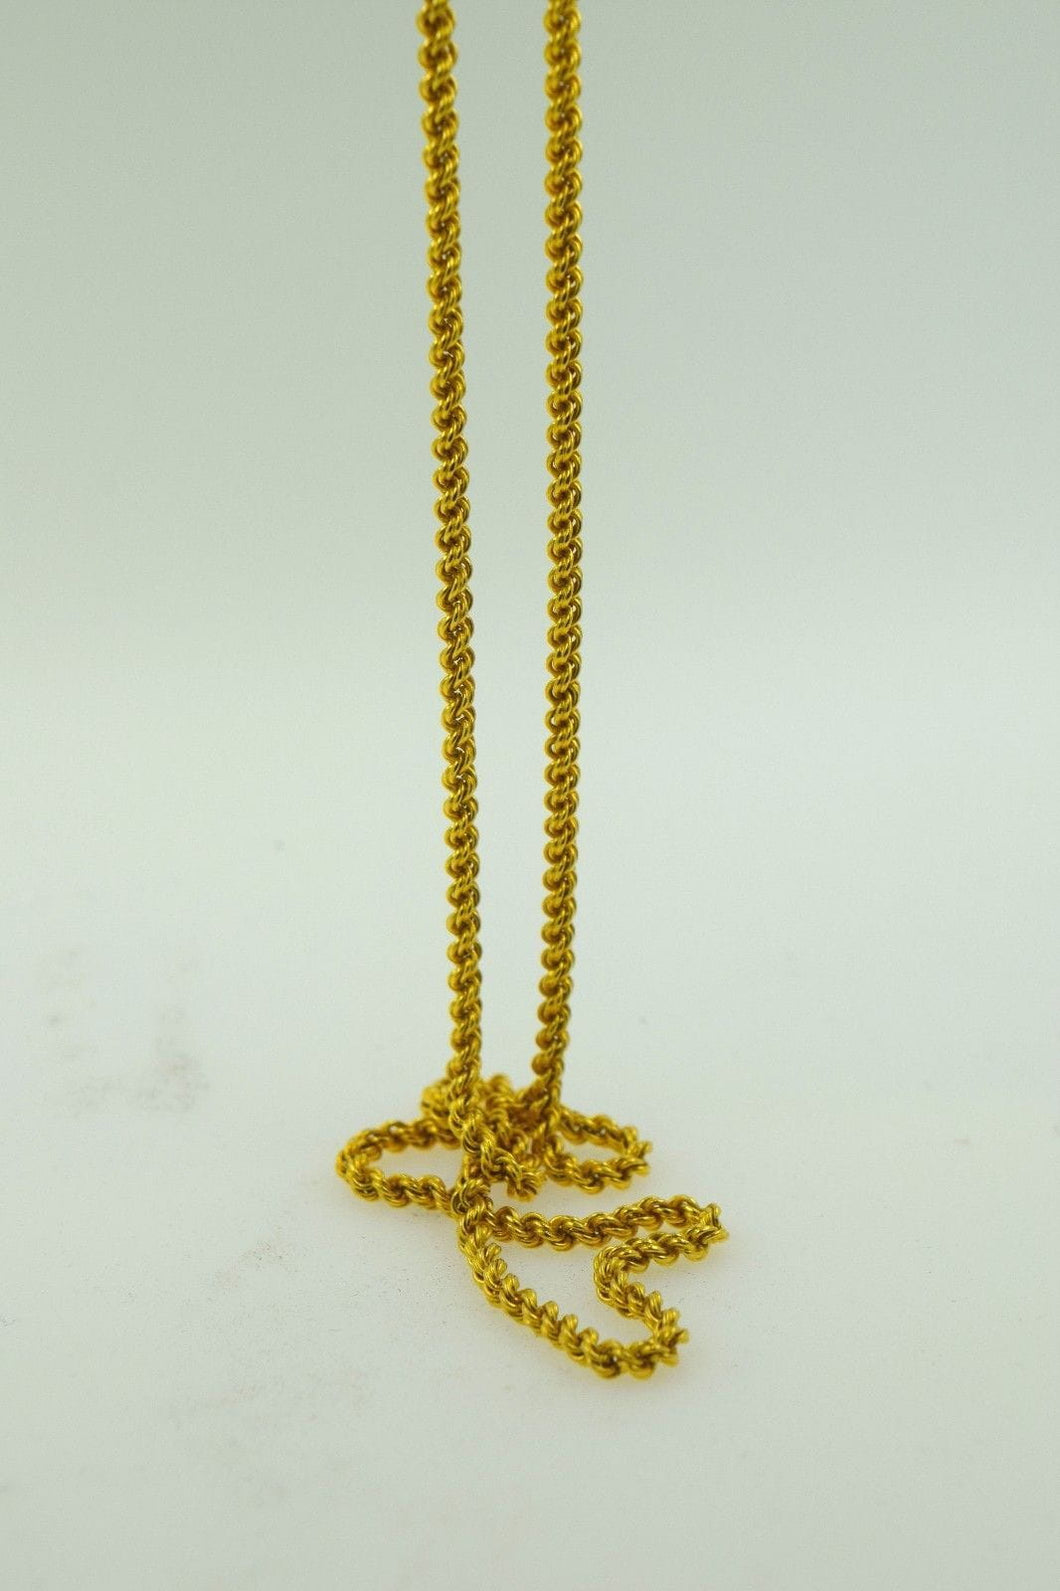 22k Yellow Solid Gold Chain Rope Necklace 2.6mm 20 inch c732 | Royal Dubai Jewellers